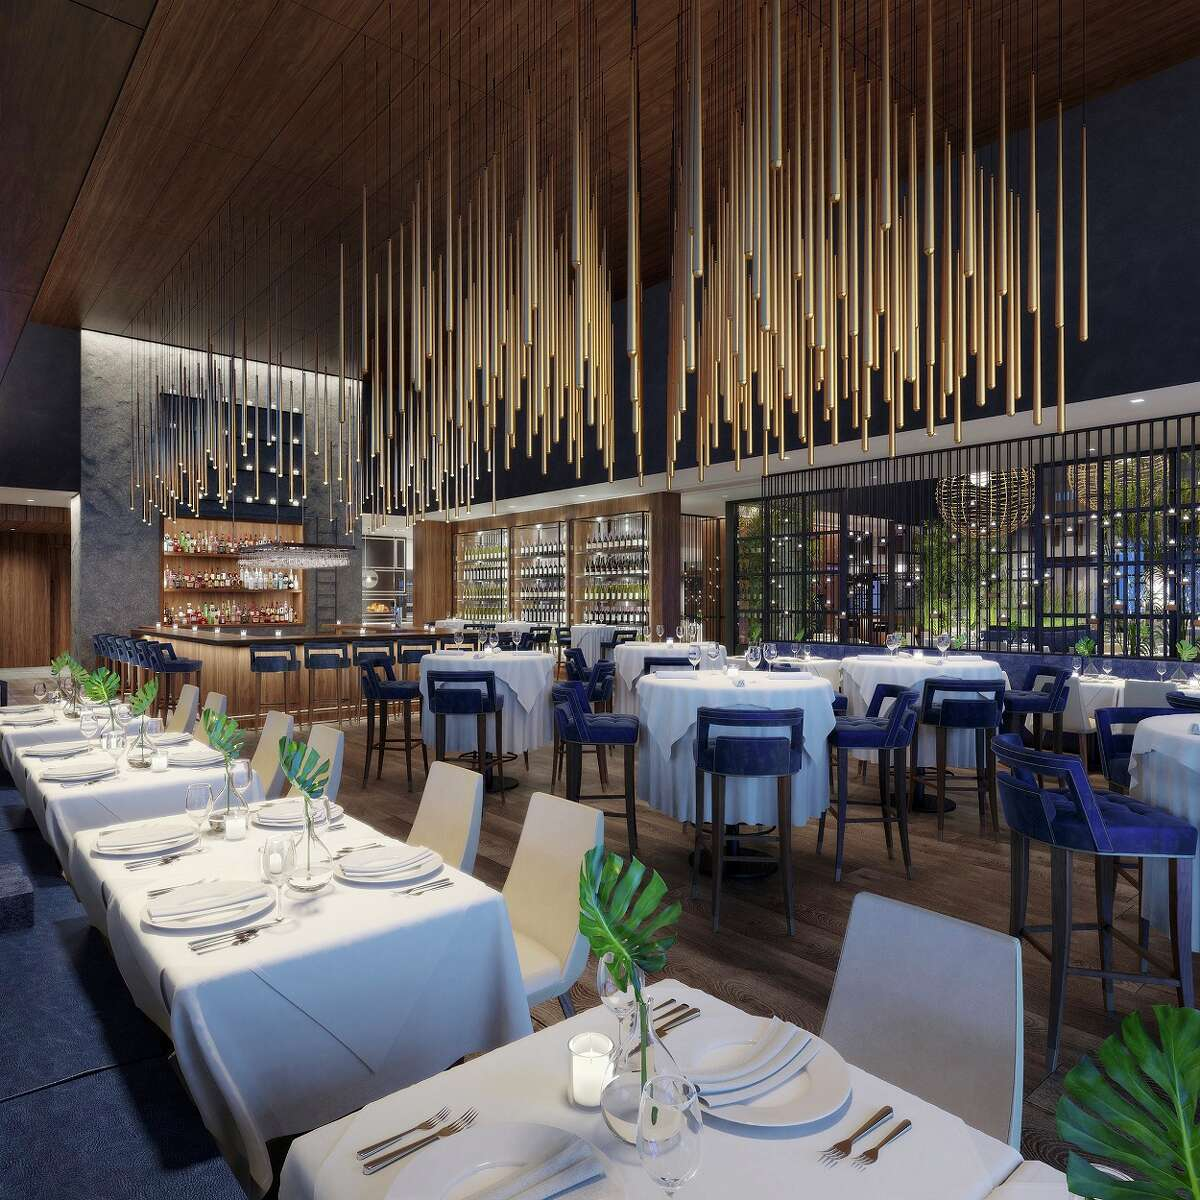 The owners of Houston's Steak 48 will open a new seafood-centric restaurant concept, Ocean 44, in Scottsdale, Ariz., in November. Plans are to bring the concept to Houston. Shown: Renderings of Ocean 44.